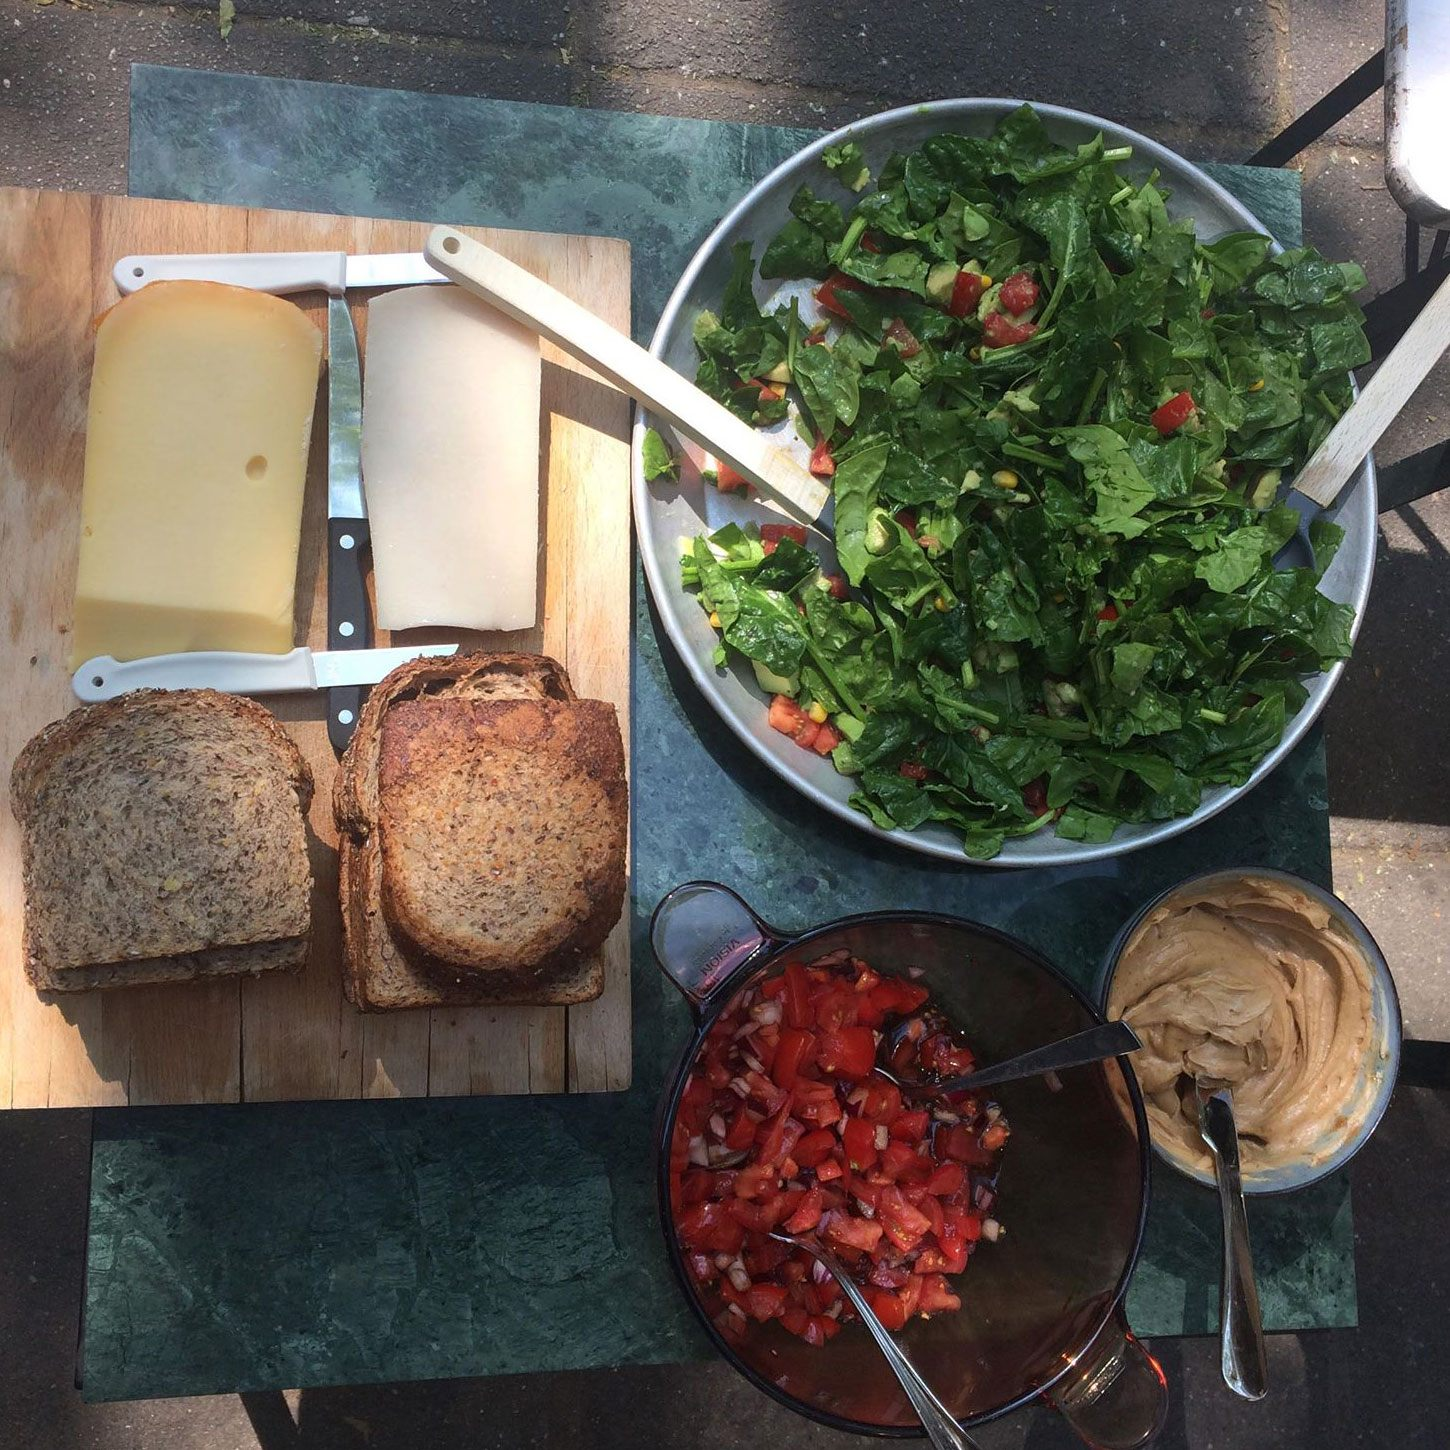 Our lunch spread on Friday, yum!